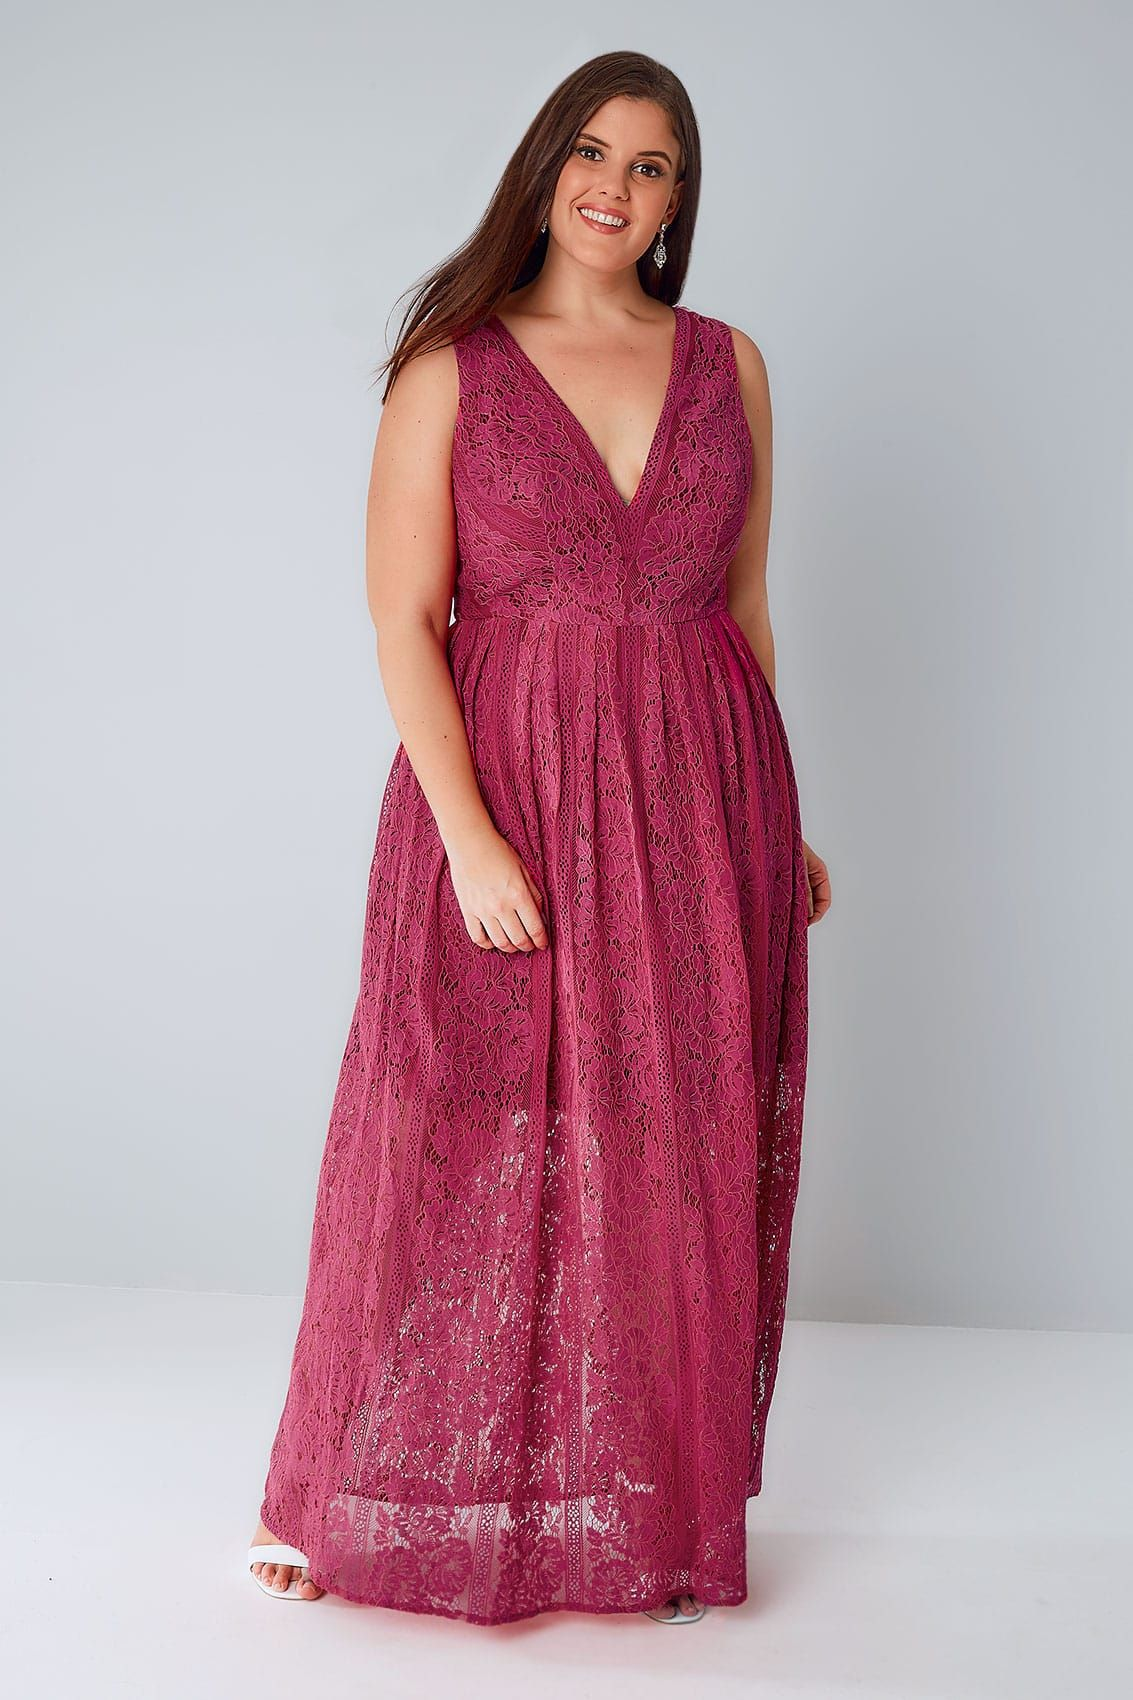 cad37134472e CHI CHI Raspberry Pink Sleeveless Maxi Dress With Floral Lace Overlay